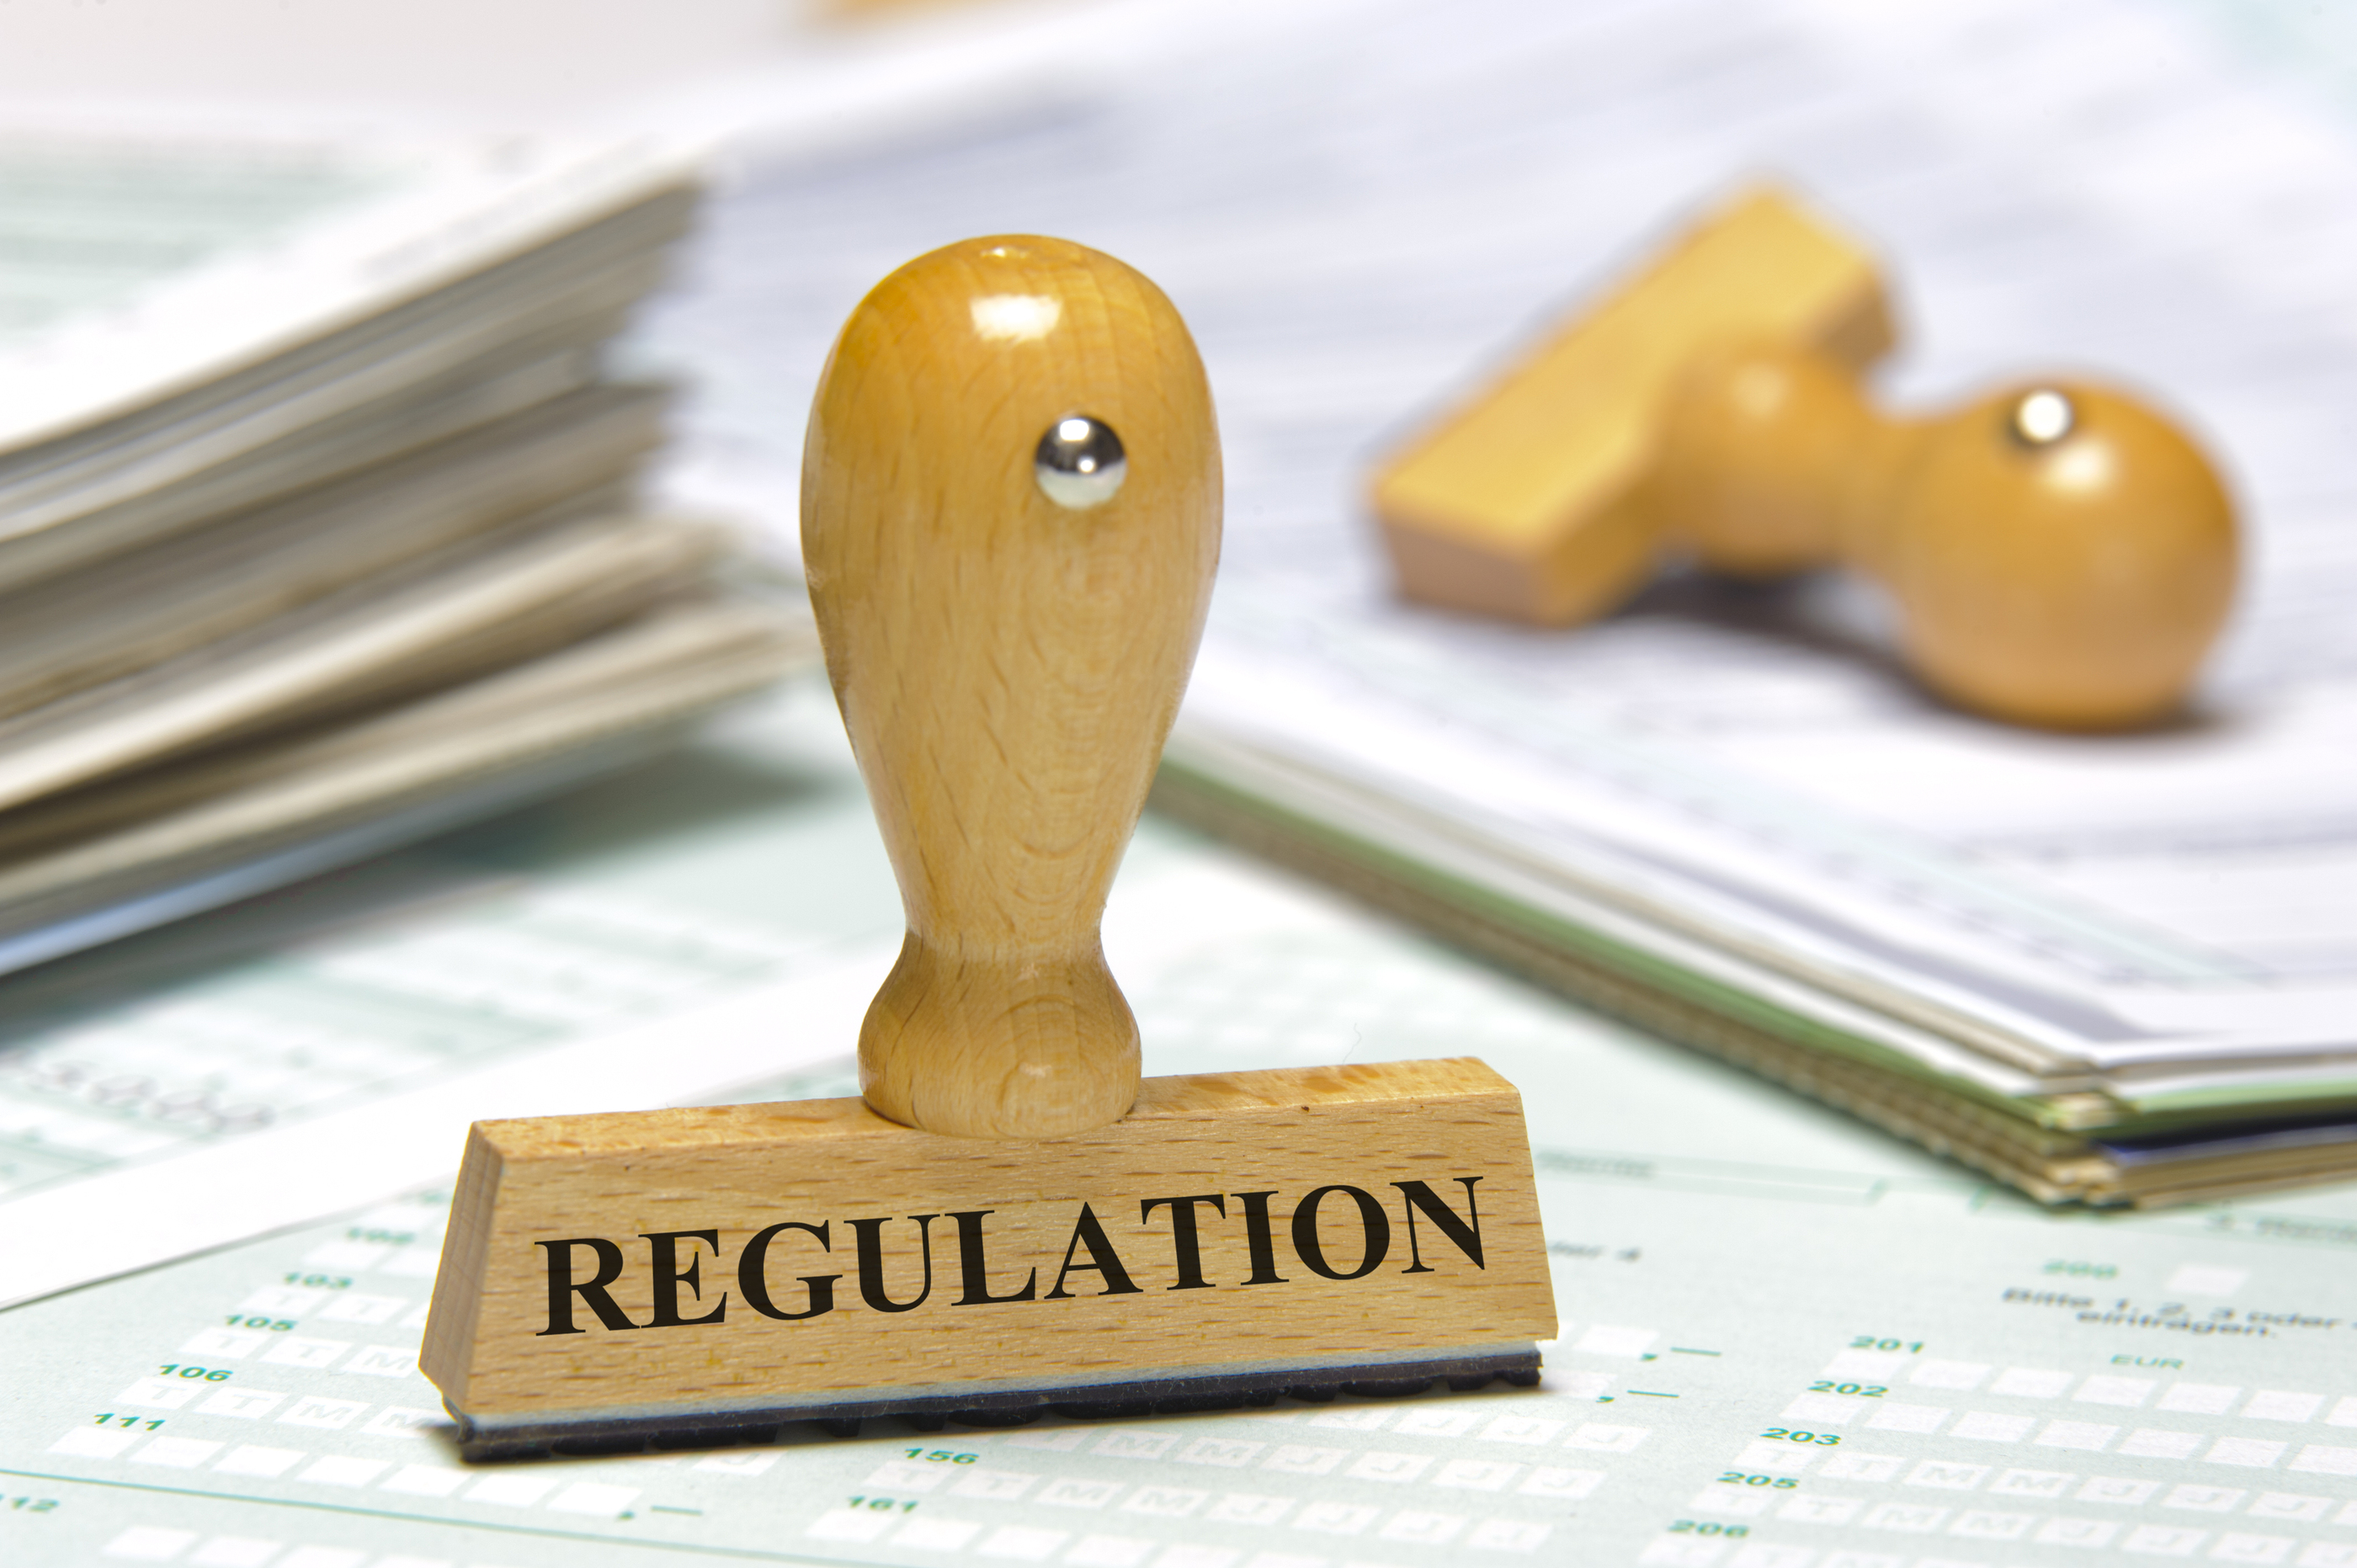 regulations | All the action from the casino floor: news, views and more